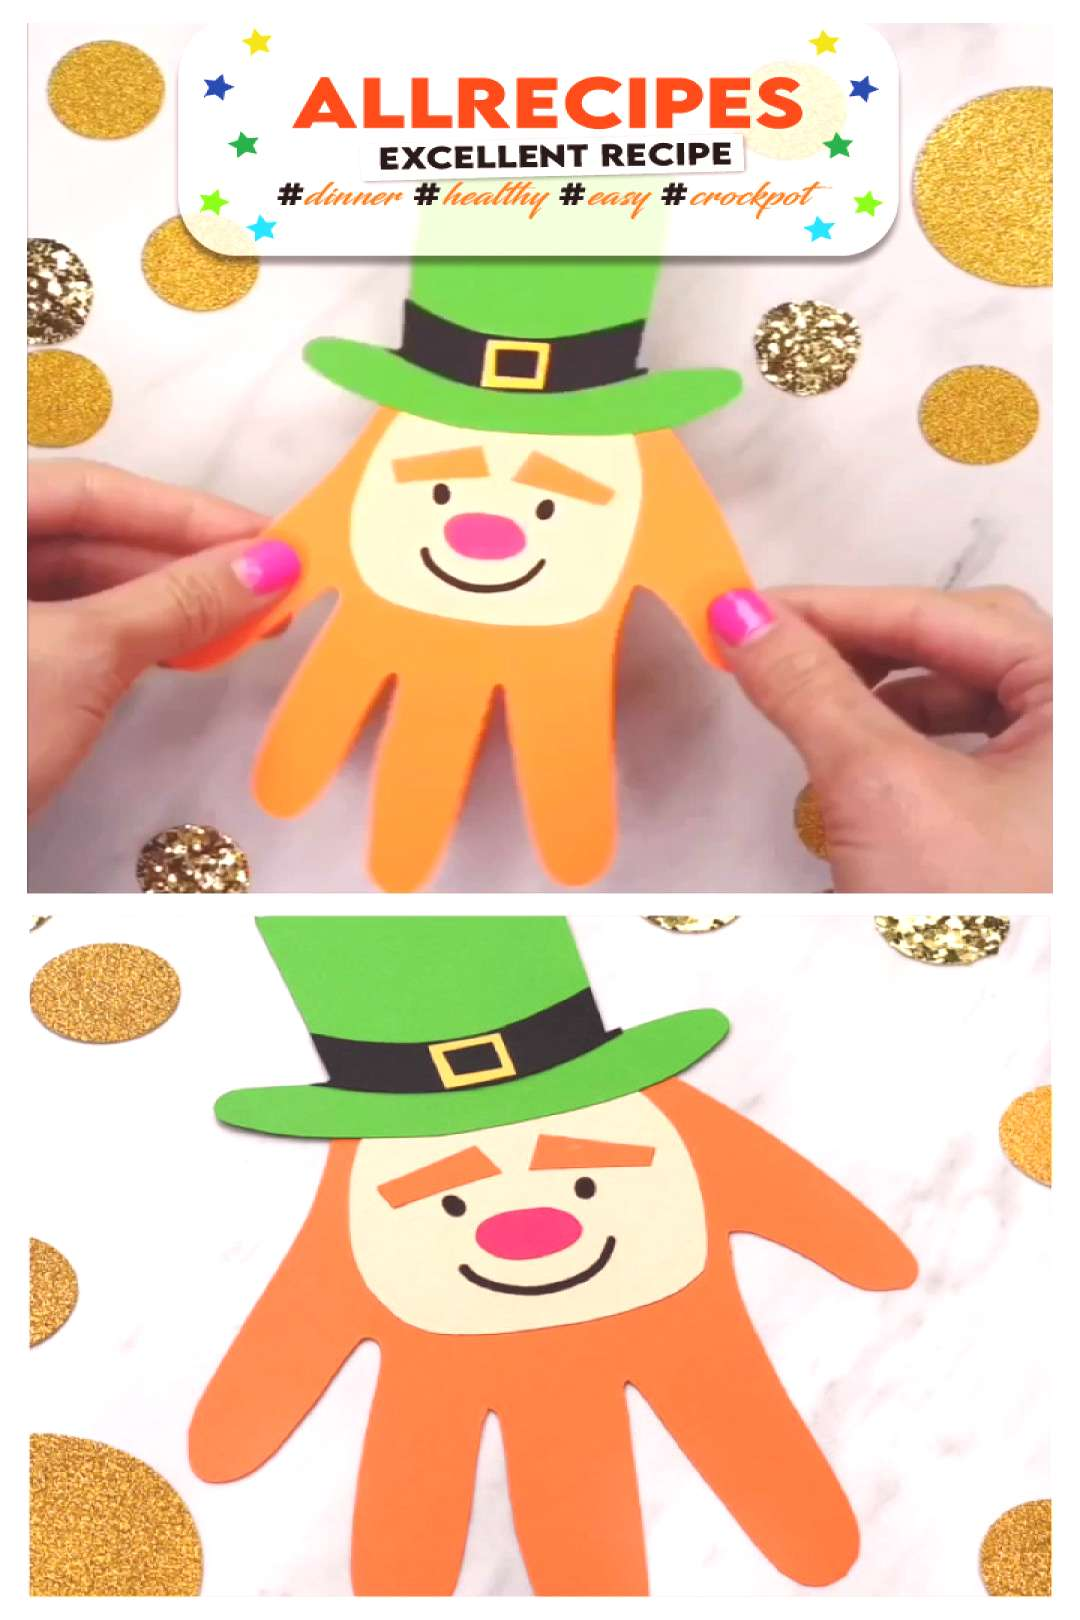 St Pattys Day Craft For Kids  - - If you're looking for an easy St Pattys day craft for kids, this